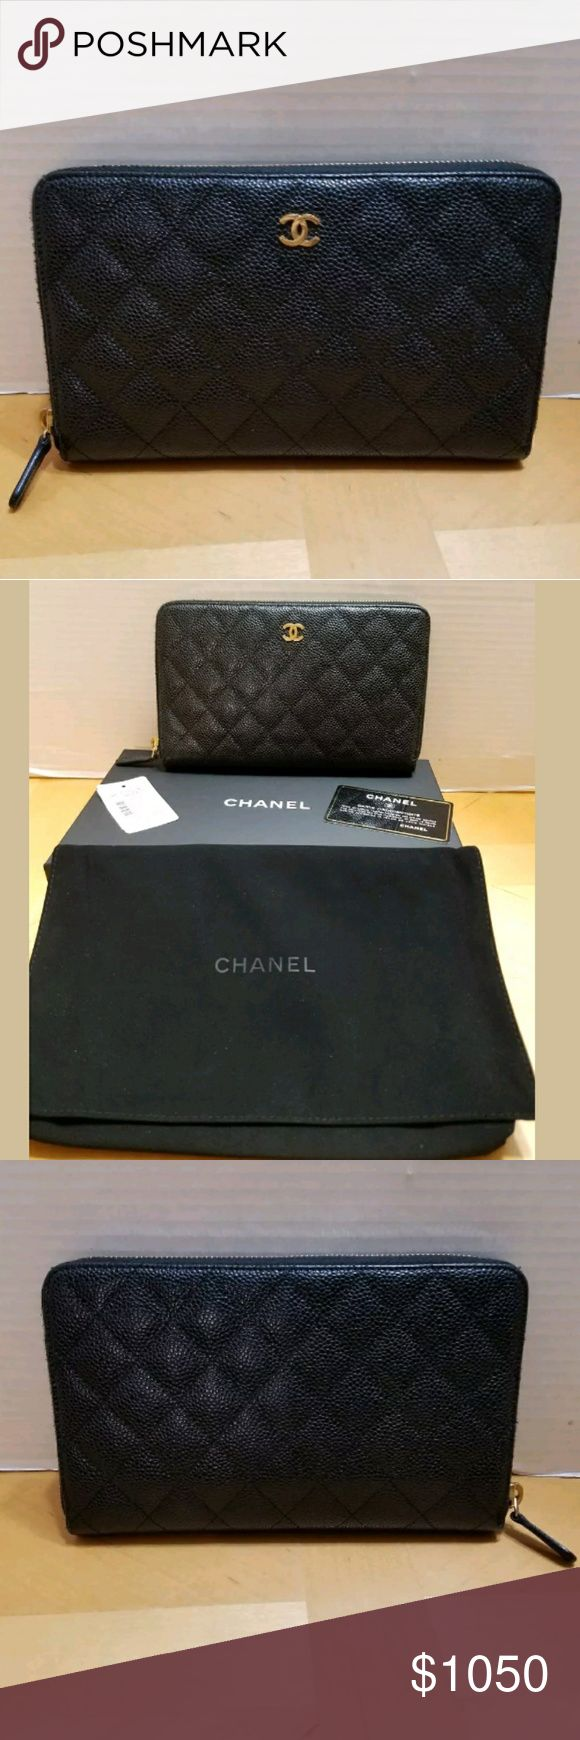 "AUTHENTIC CHANEL CC MATELASSE ZIP AROUND WALLET AUTHENTIC  BRAND NEW WITH TAGS  CHANEL CC MATELASSE ZIP AROUND WALLET  BLACK CAVIAR LEATHER  A48982 Y01864  8"" L x 4.5"" W x 3/4"" D  Inside zip pocket  4 slip pockets  16 credit card slots  Comes with Chanel dustbag and box  Retail price: $1200.00 CHANEL Bags Wallets"